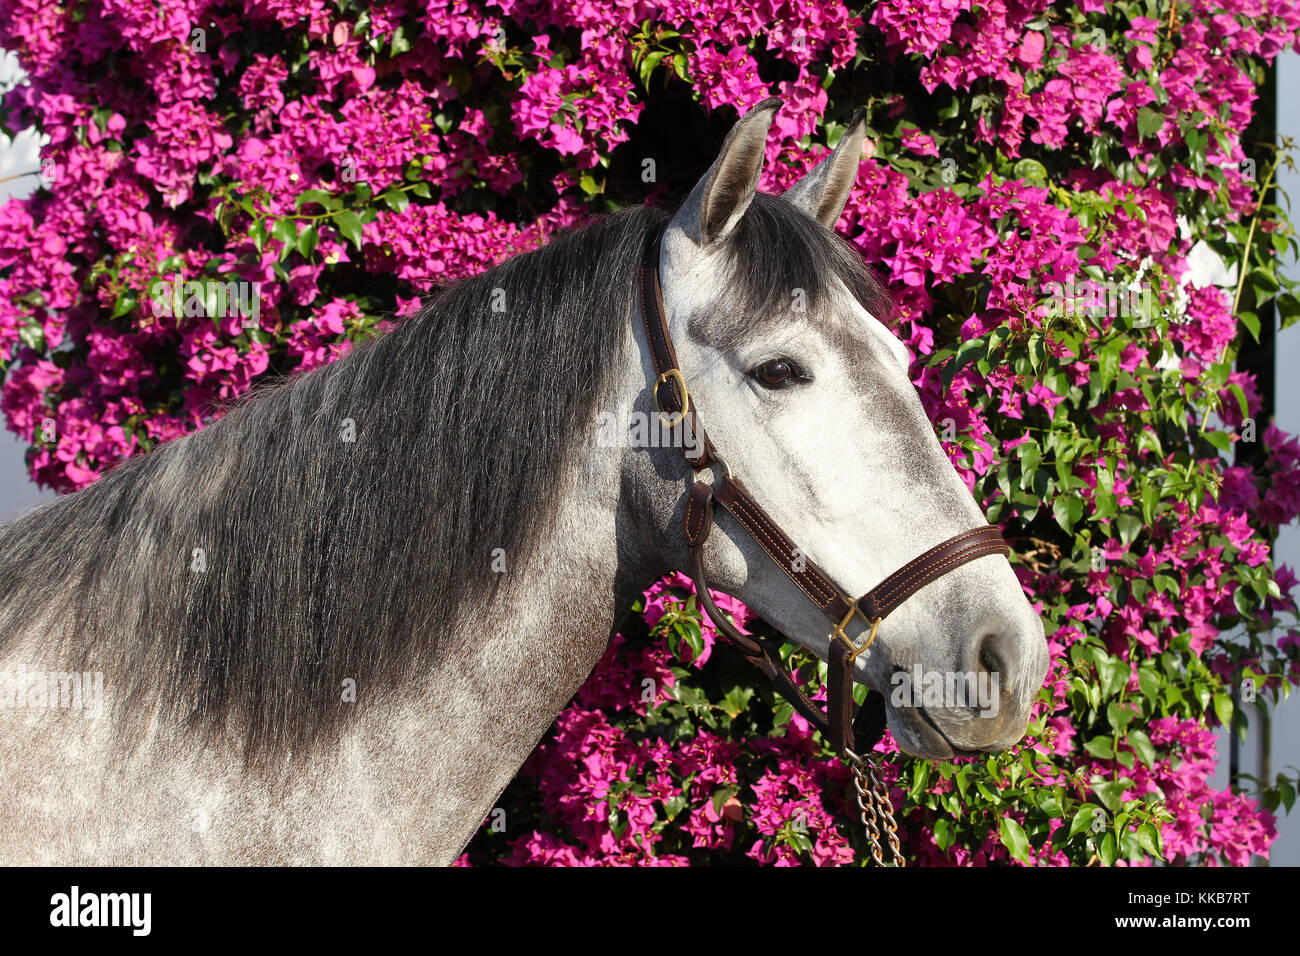 andalucian horse - Stock Image